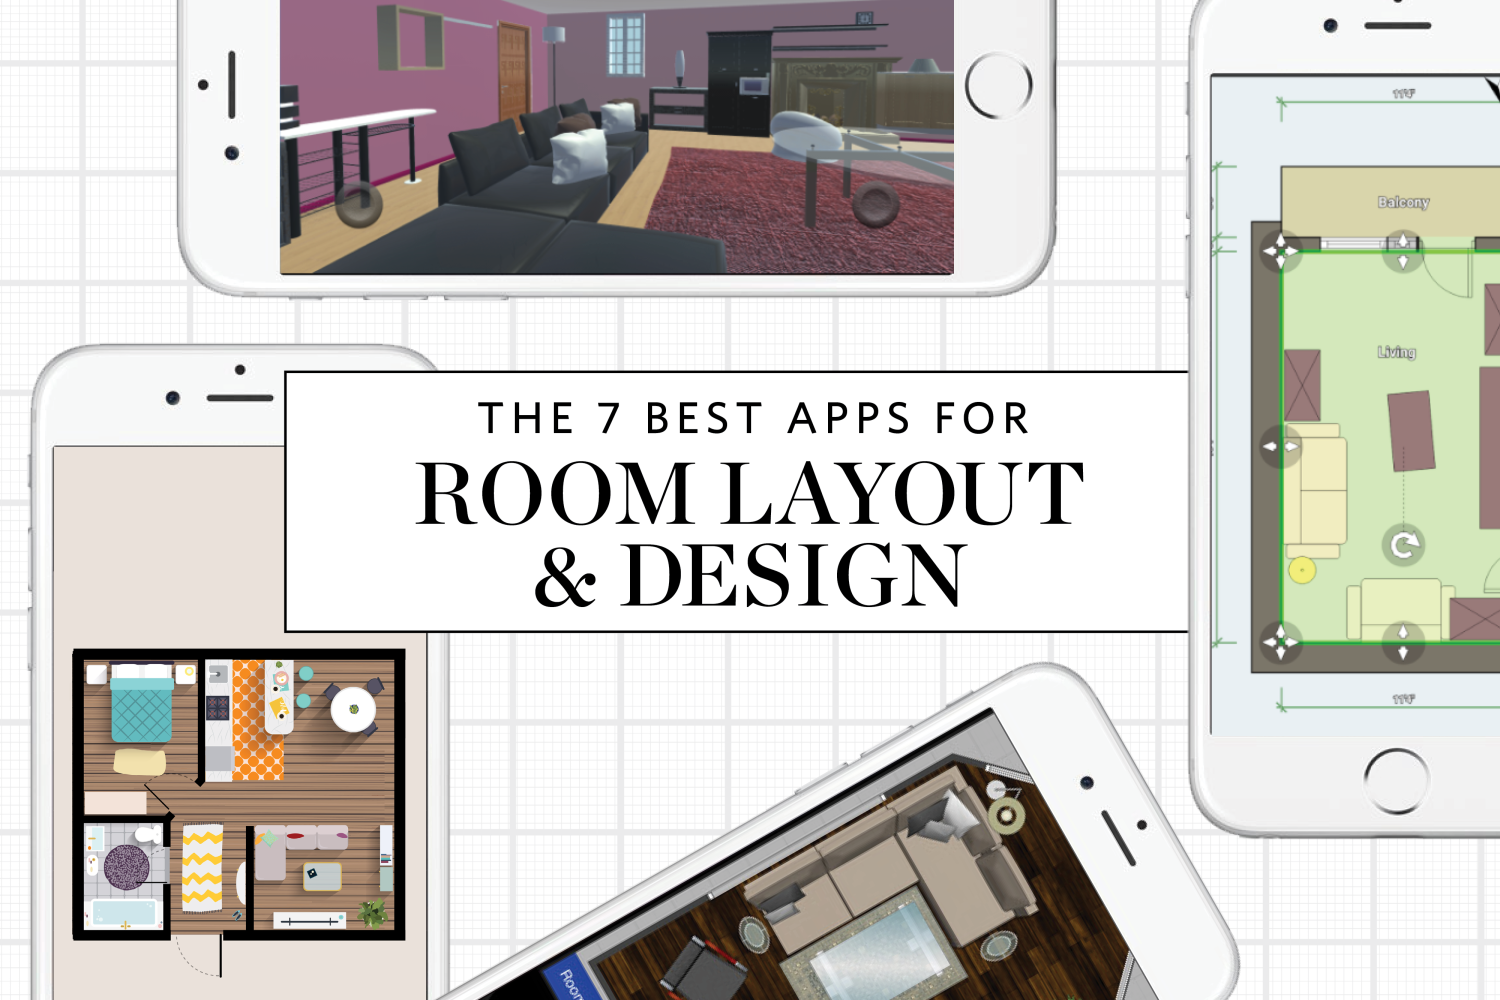 And planning room layouts thanks to  treasure trove of user friendly apps it   super easy create floor plans virtually design our rooms also the best for layout rh pinterest